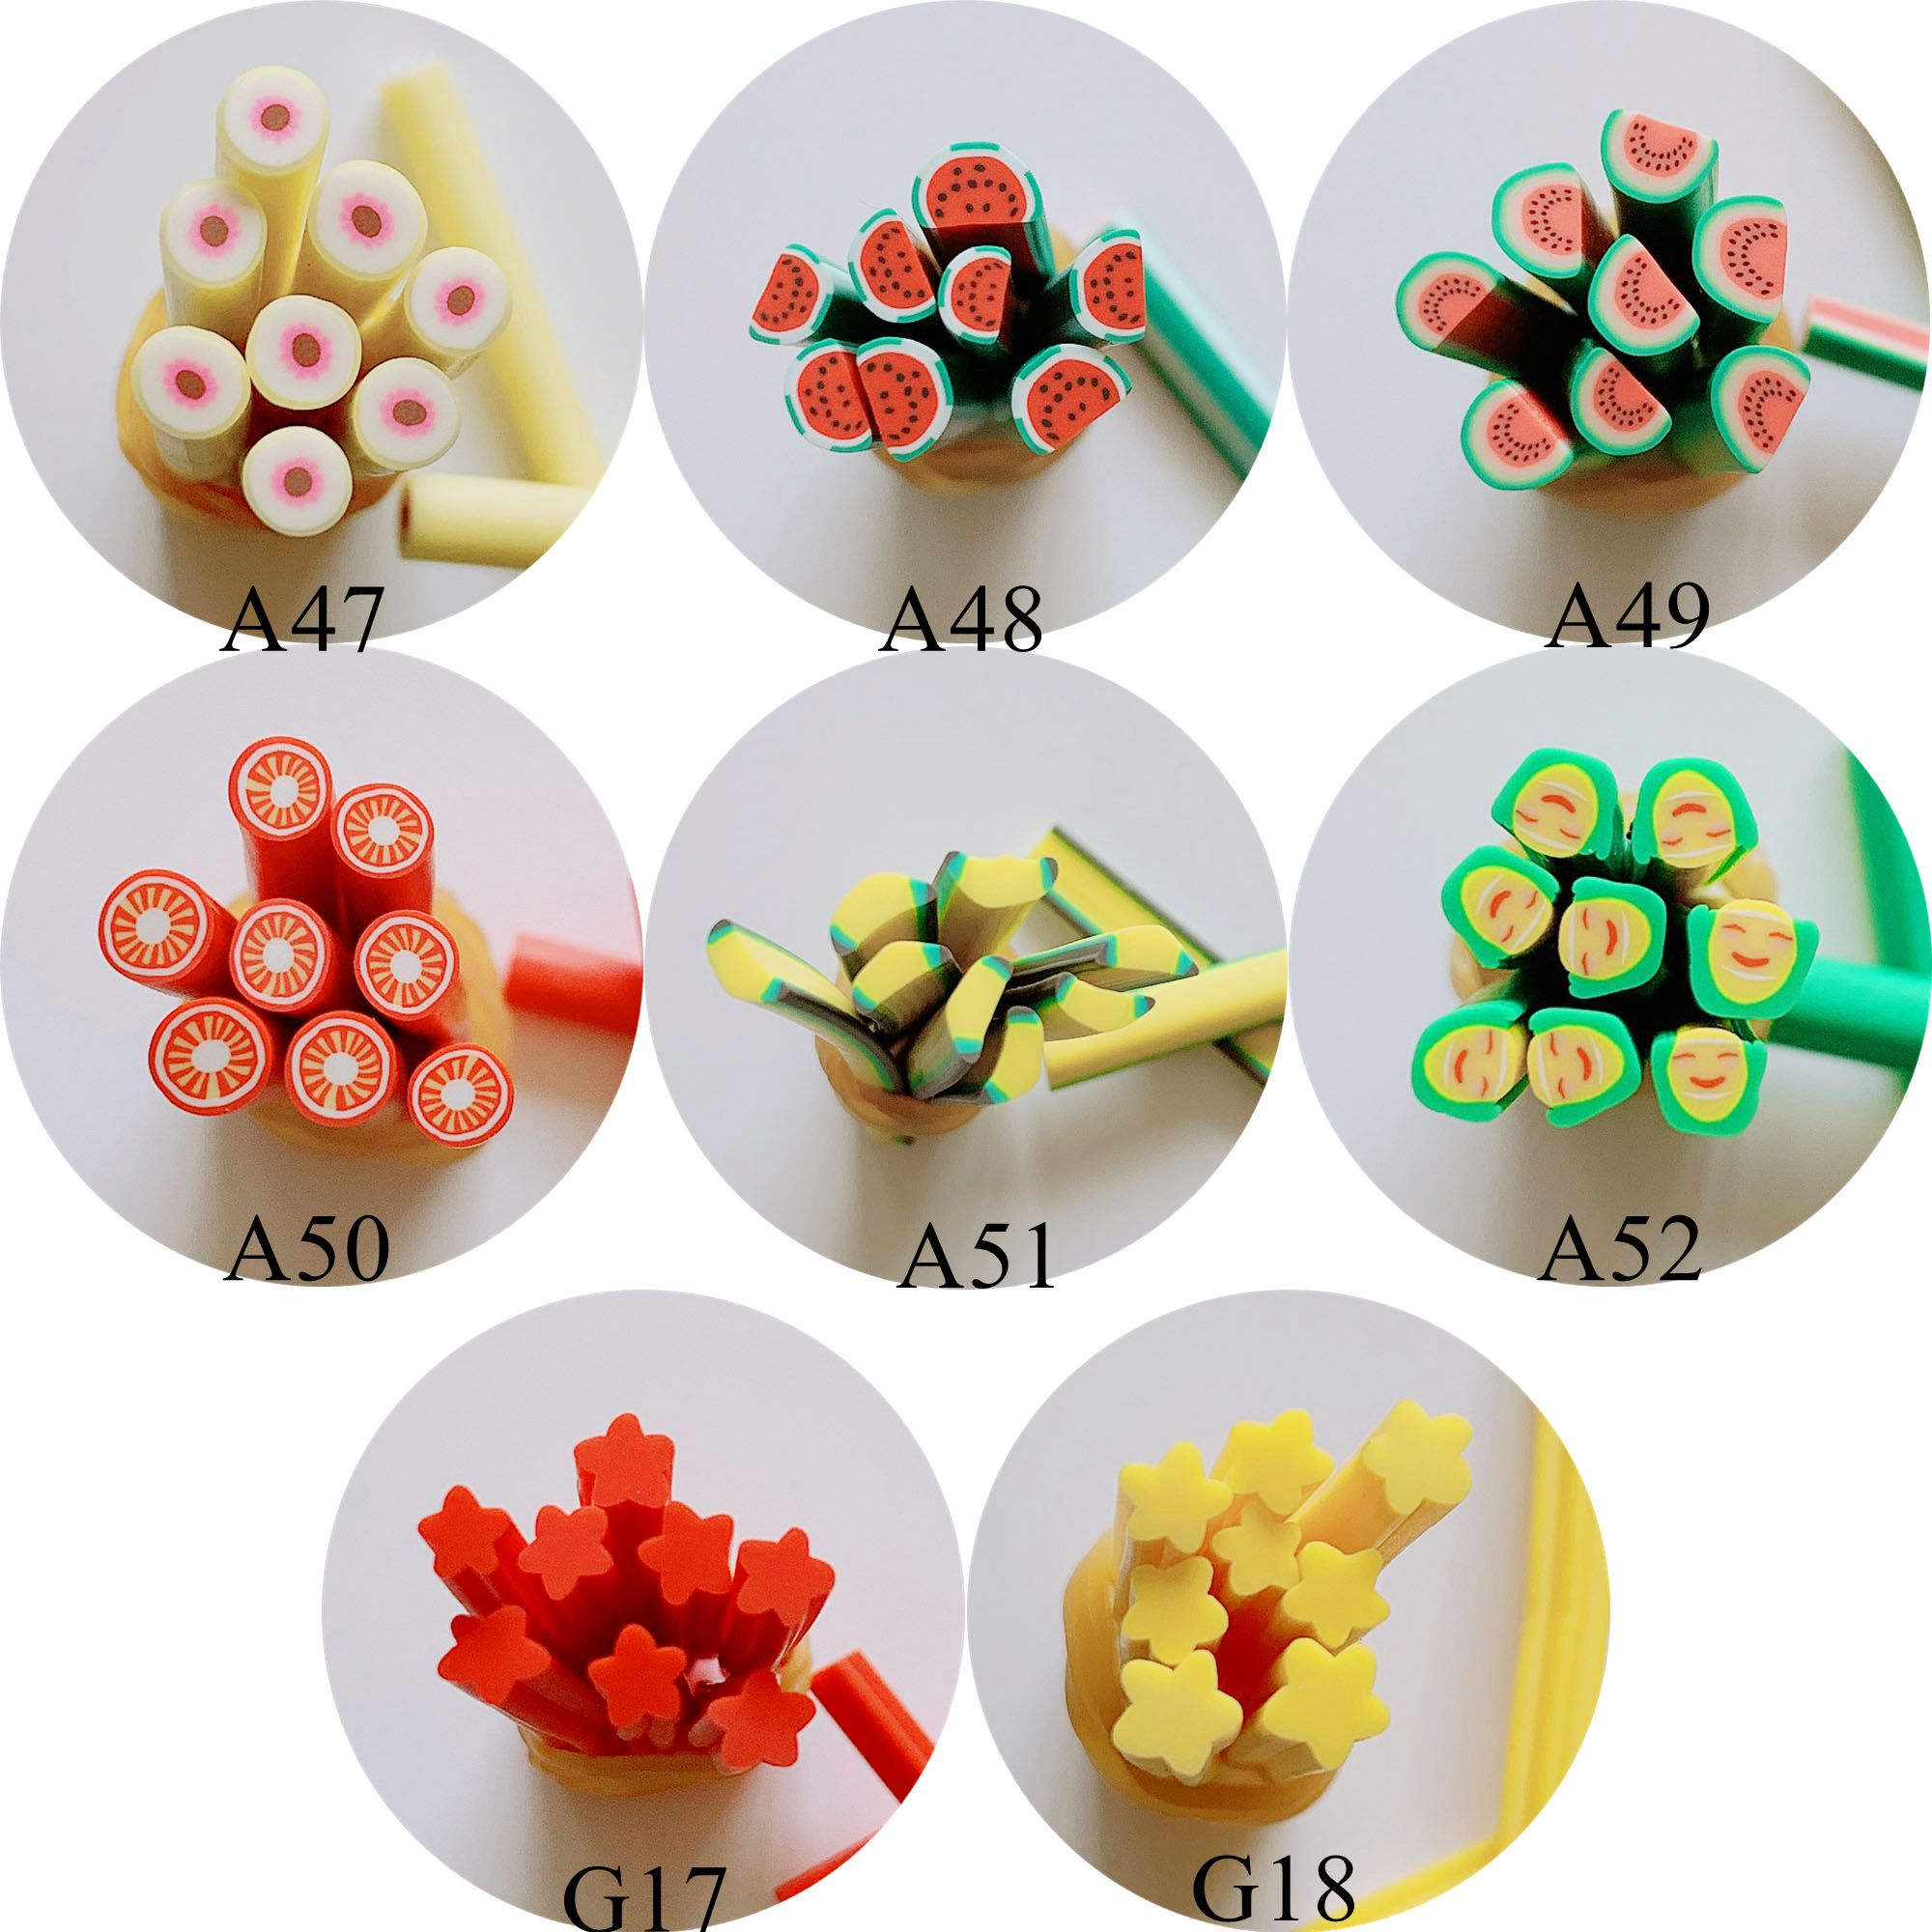 5pcs 5mm Cute Round Cane Fancy Nail Art Polymer Clay Cane Nail Art Decoration New Fruit Series Peach Banana Star